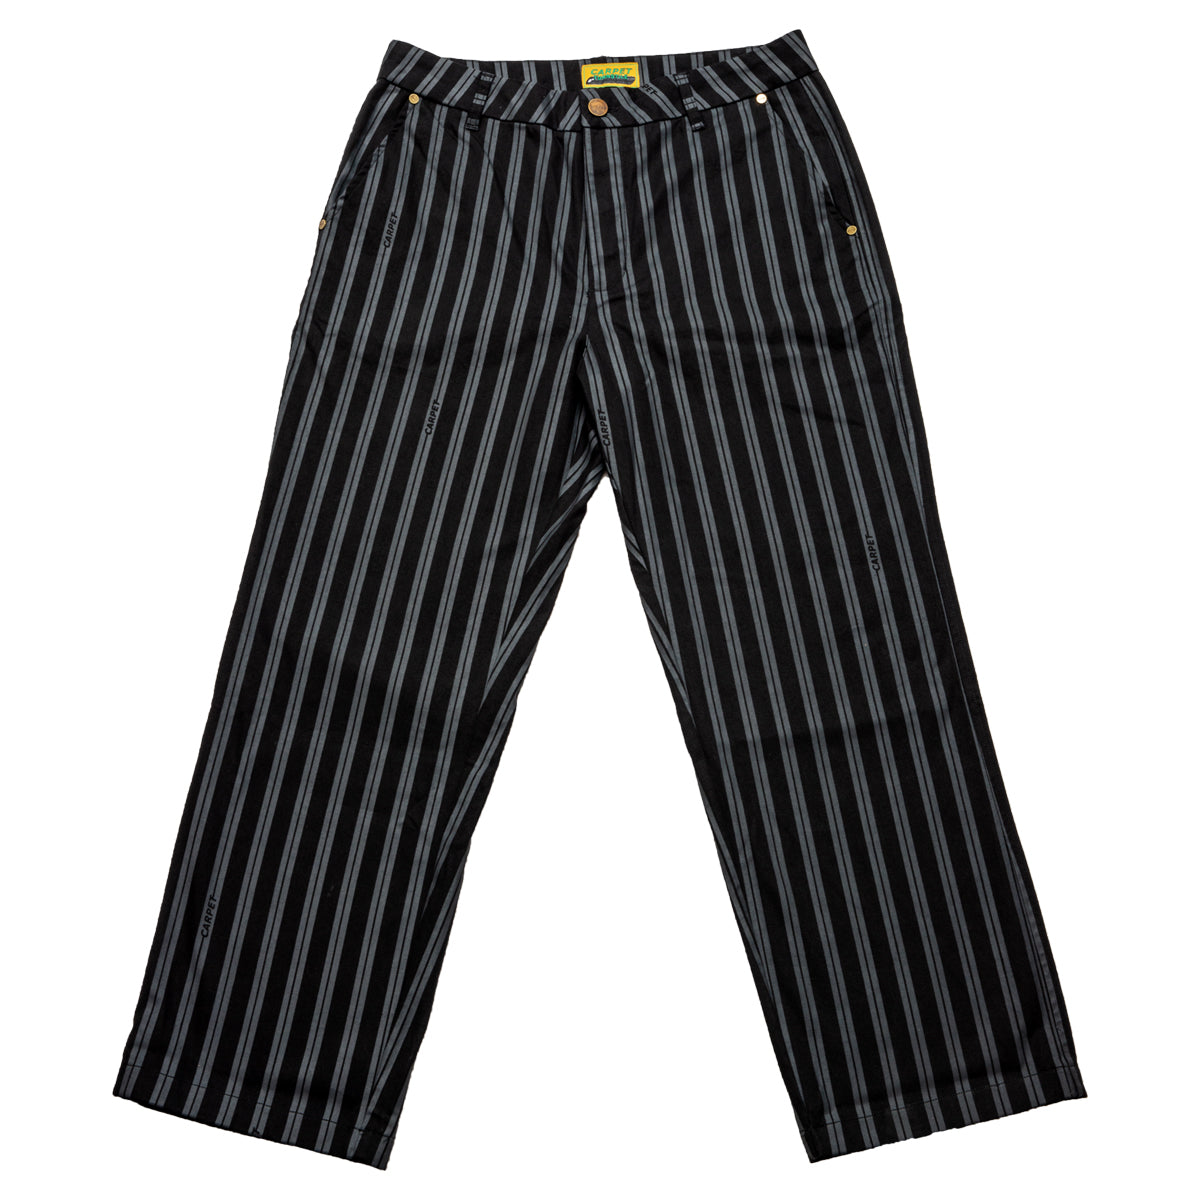 Carpet Company Baggy-ish Pinstripe Work Pants